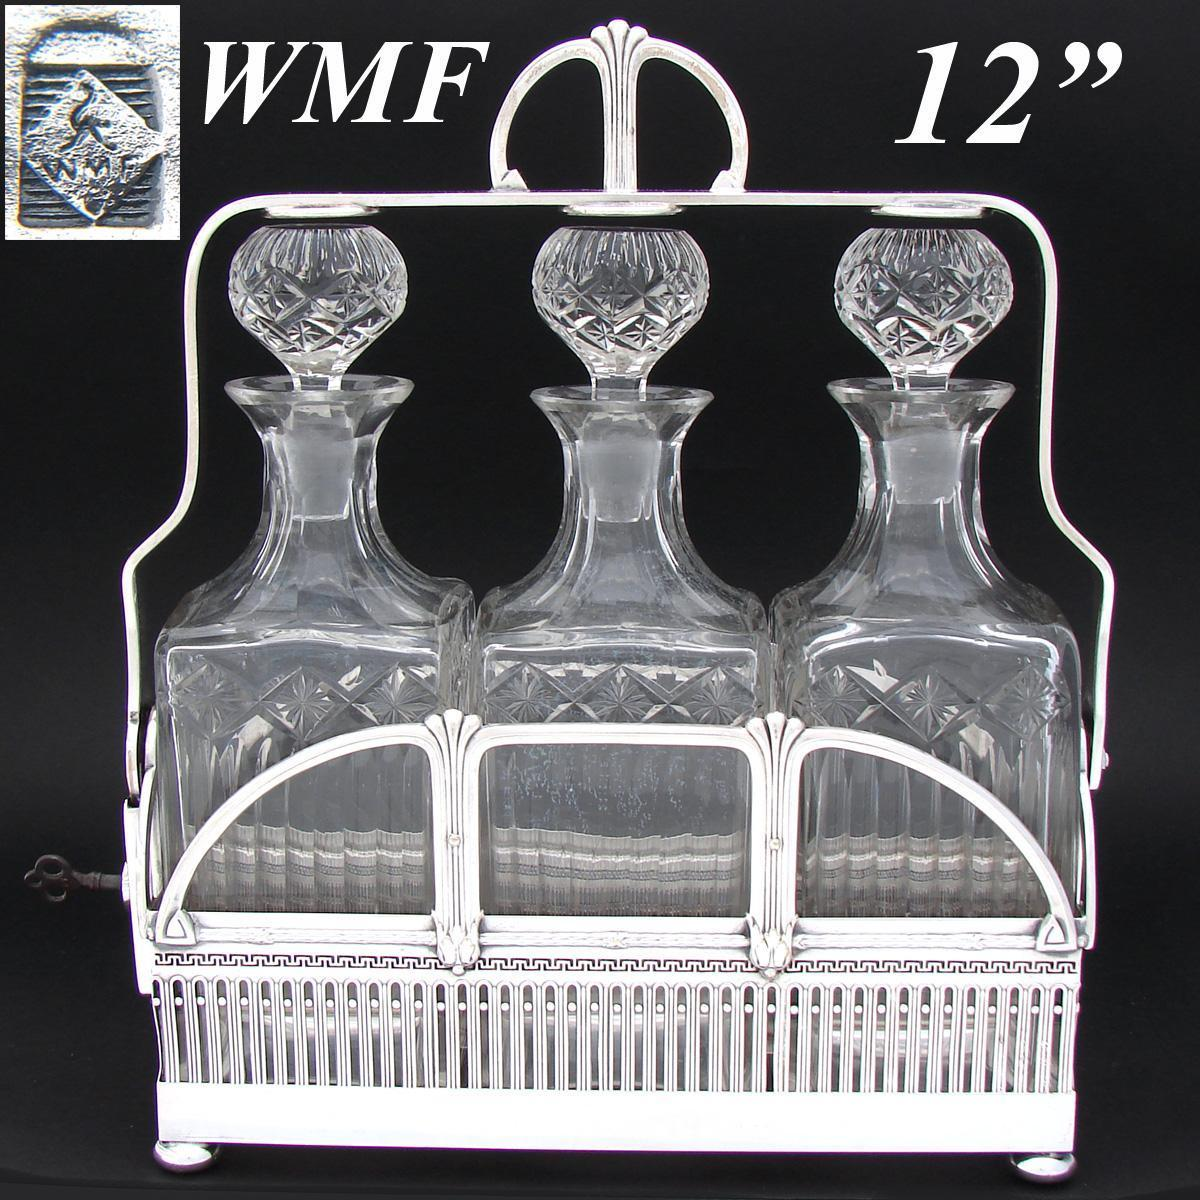 RARE Antique WMF Silver Plate Liquor Tantalus, Art Deco Influence, 3 Beautiful Original Cut Crystal Decanters